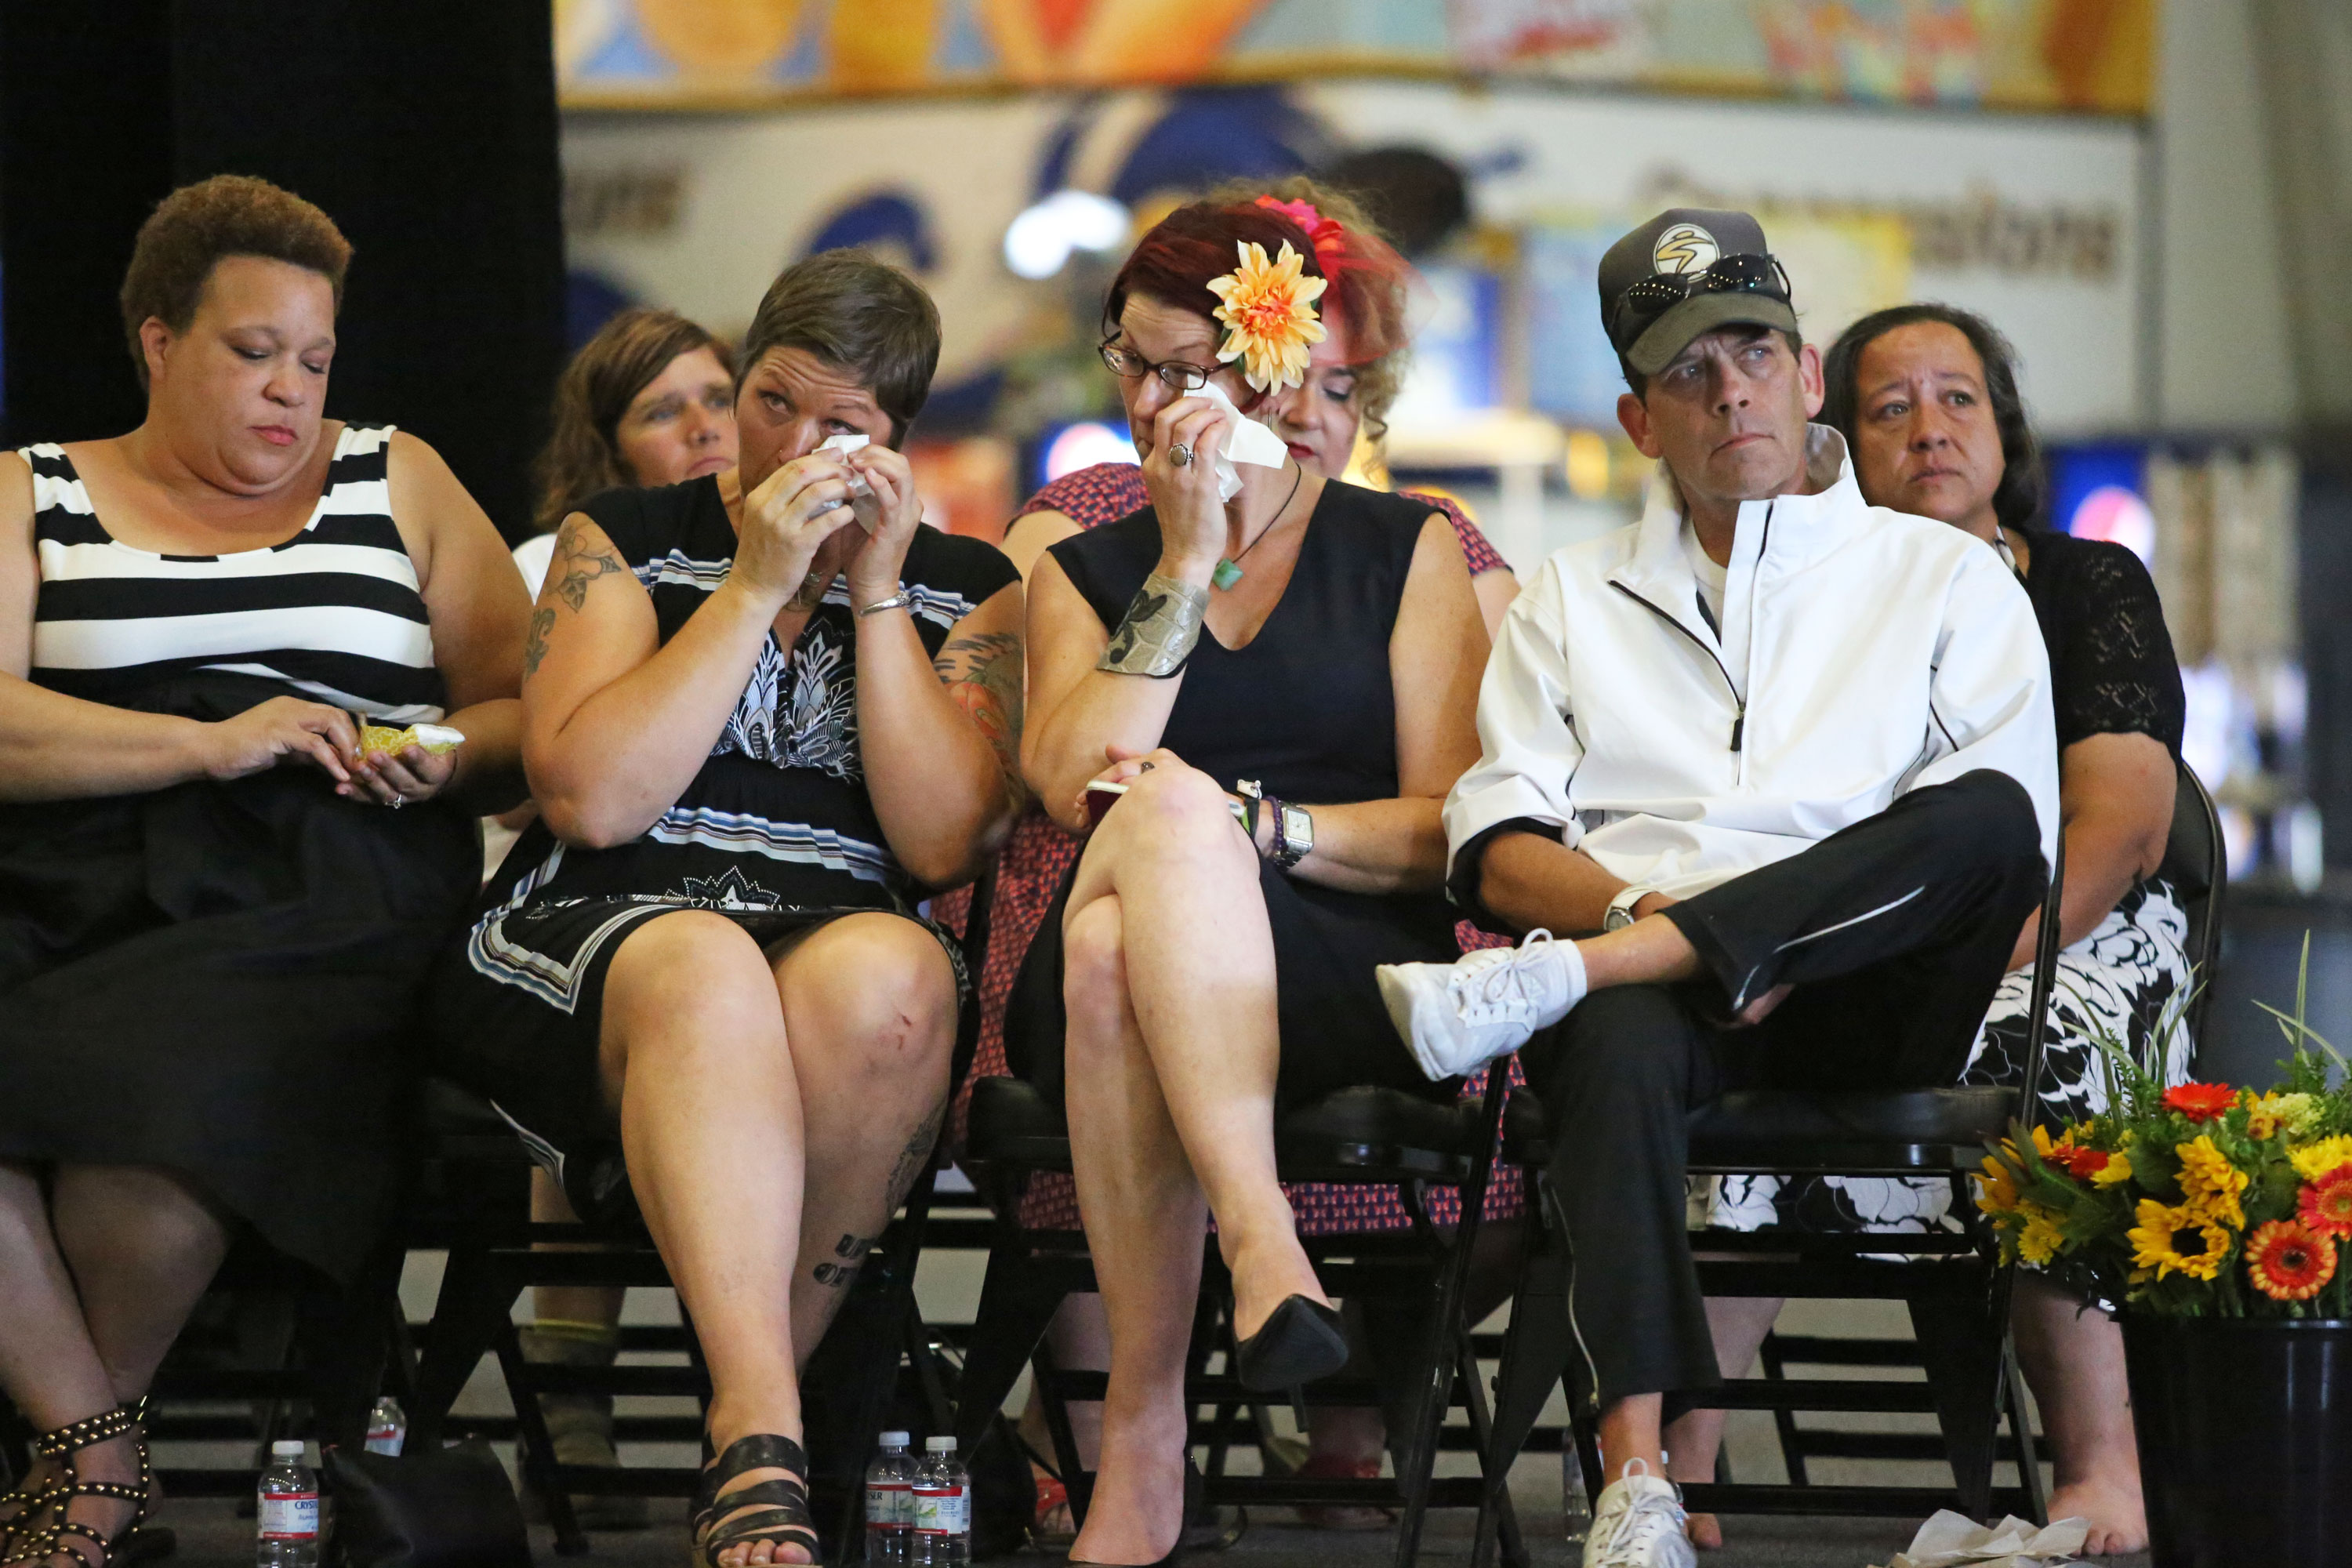 Maddy Middleton Memorial Brings Community Together